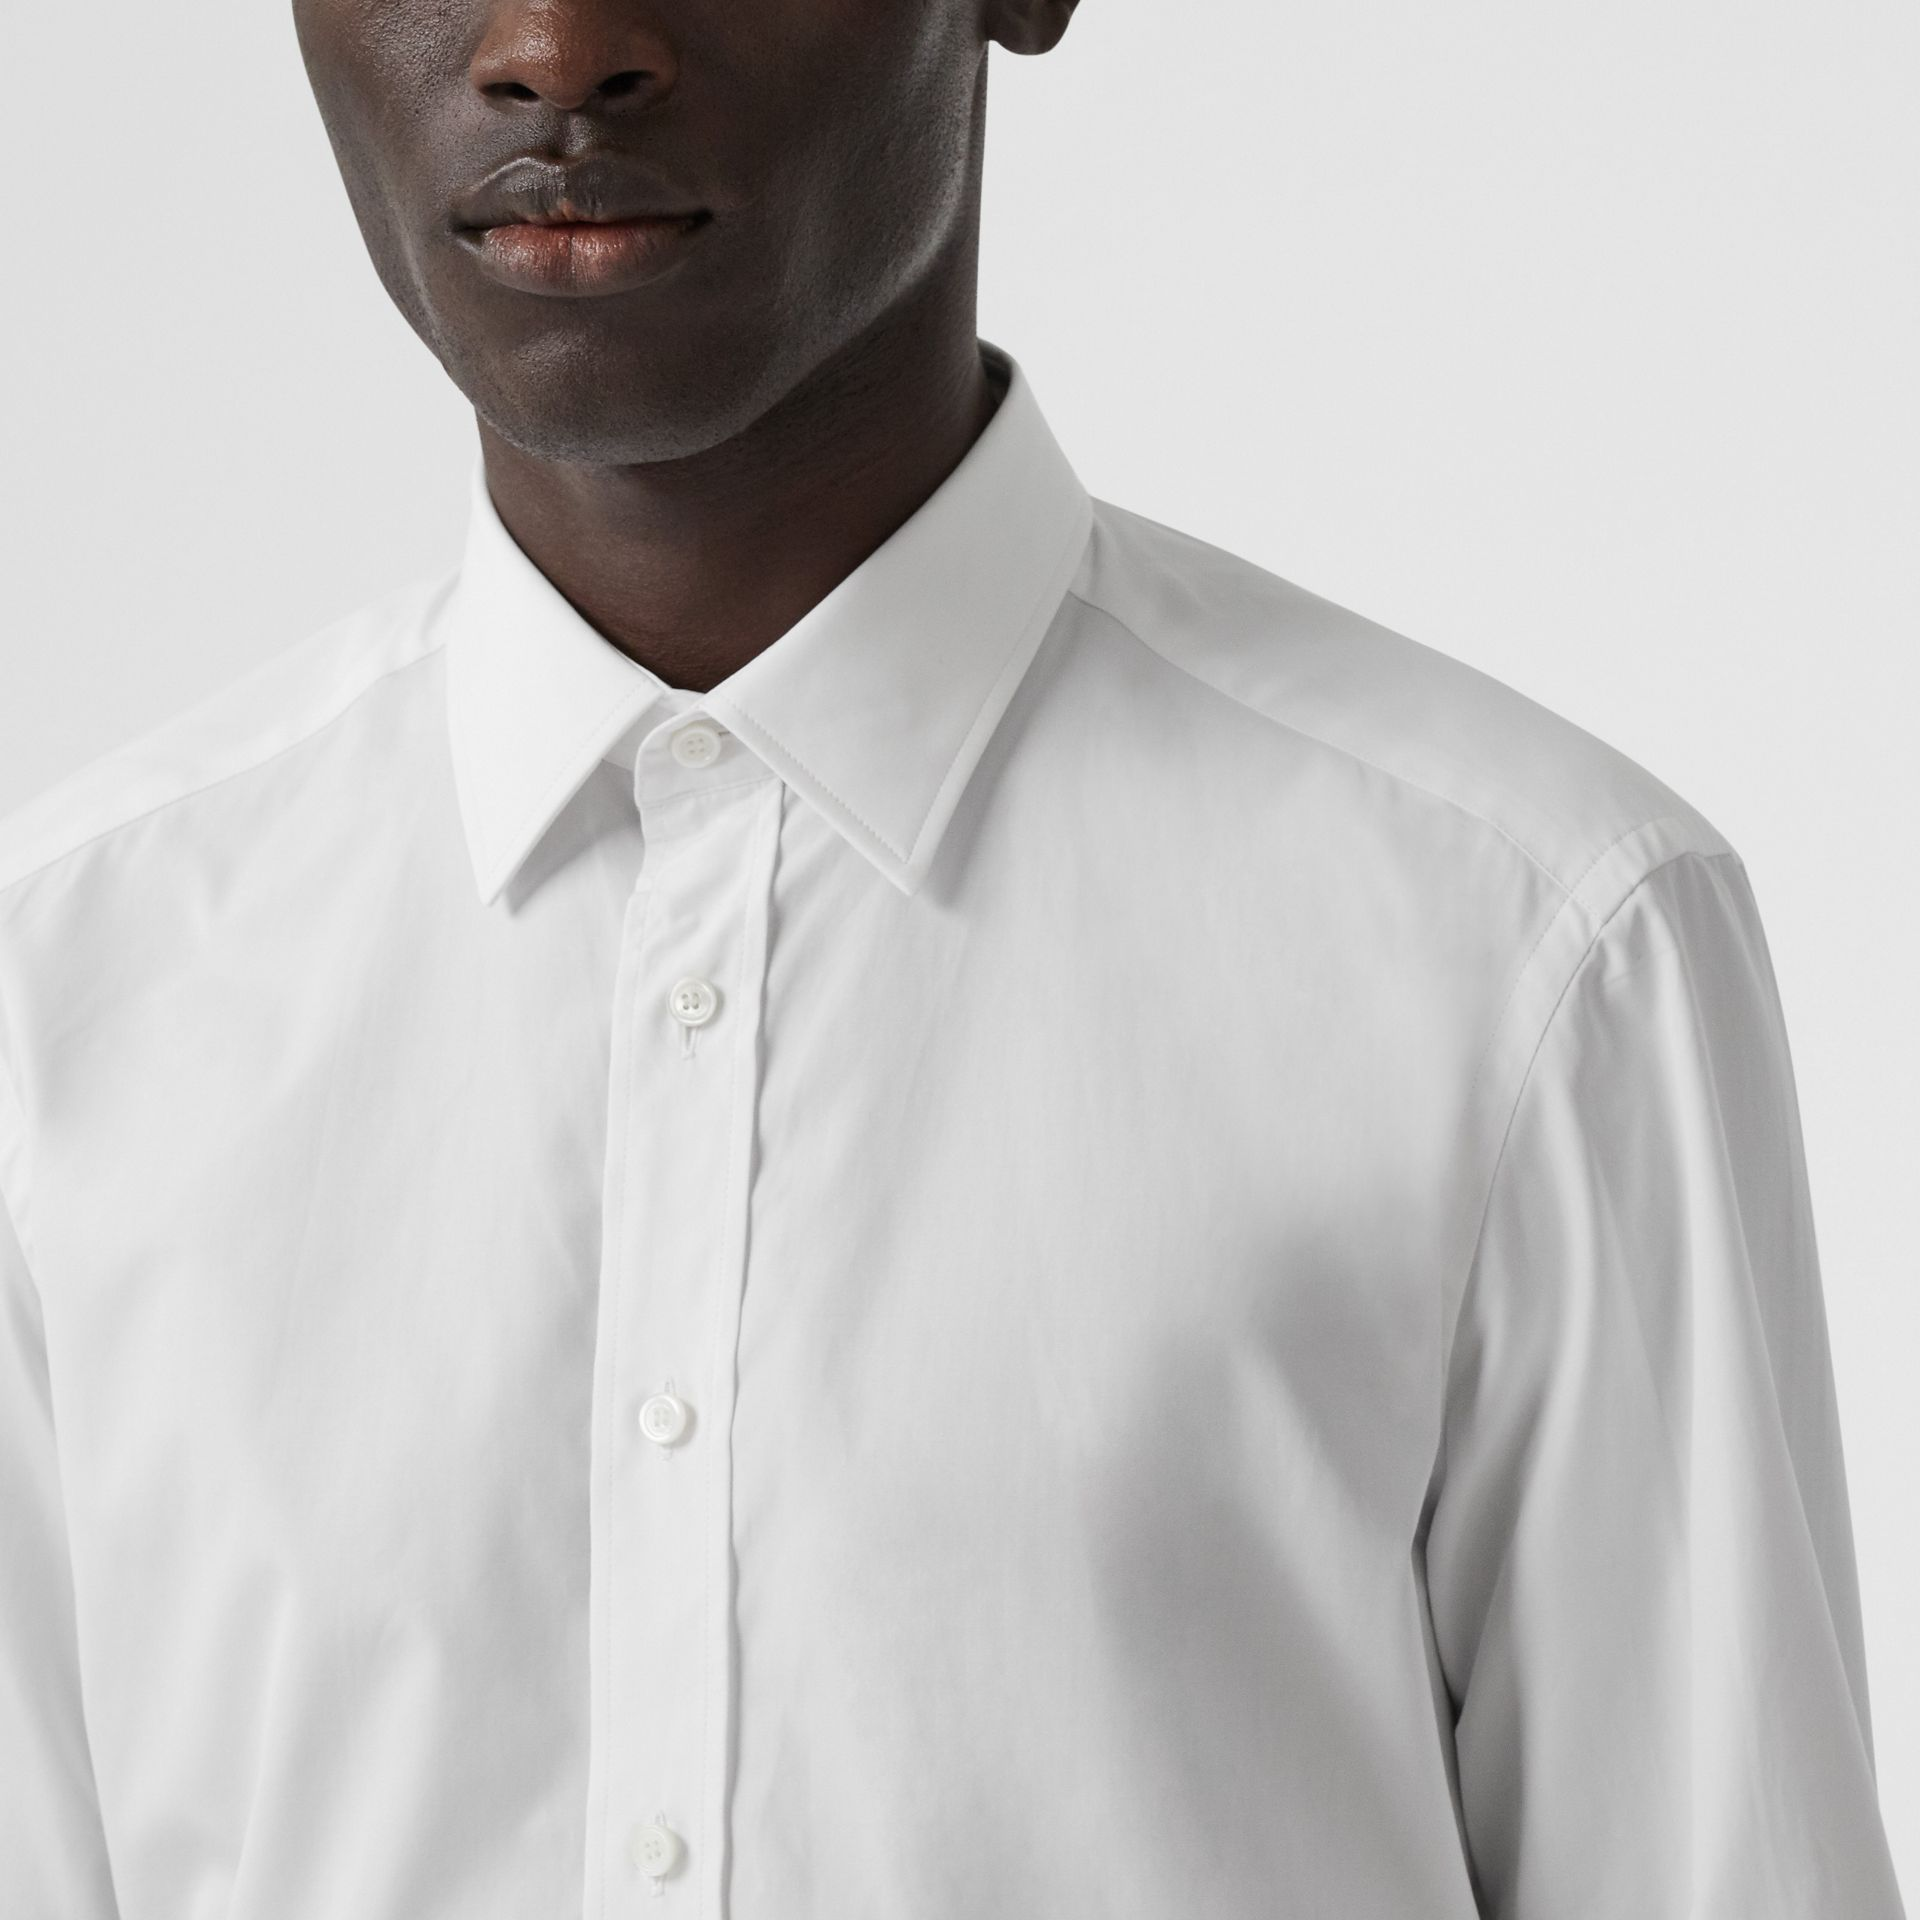 Classic Fit Monogram Motif Cotton Poplin Shirt in White - Men | Burberry United Kingdom - gallery image 1